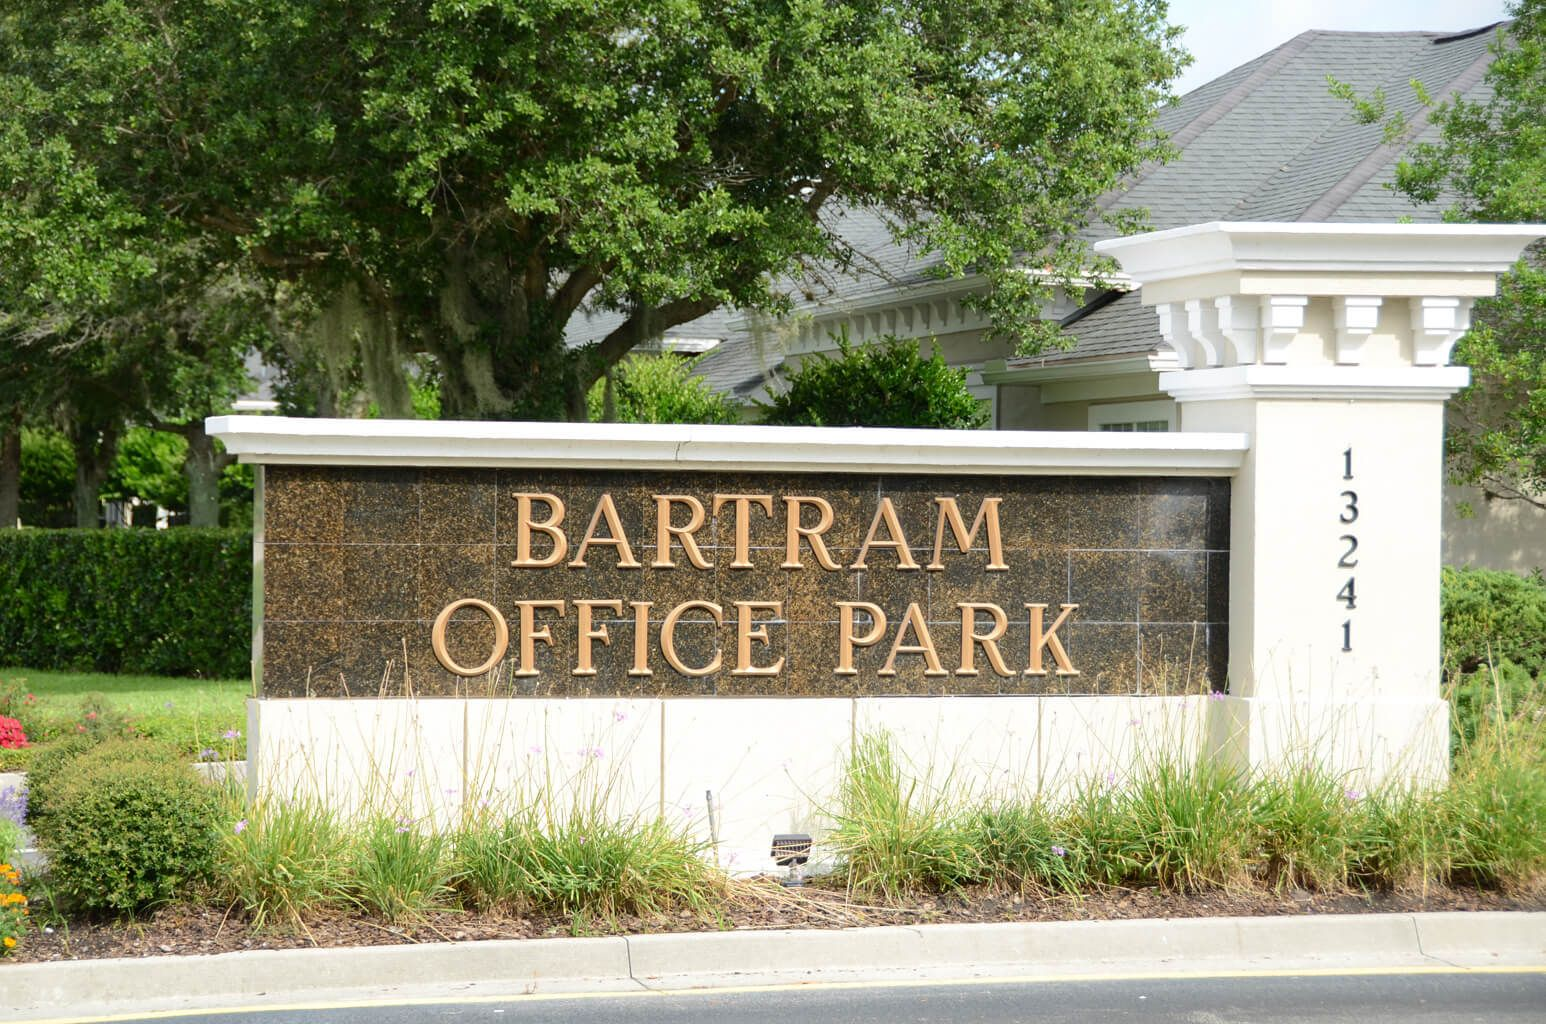 Bartram office park